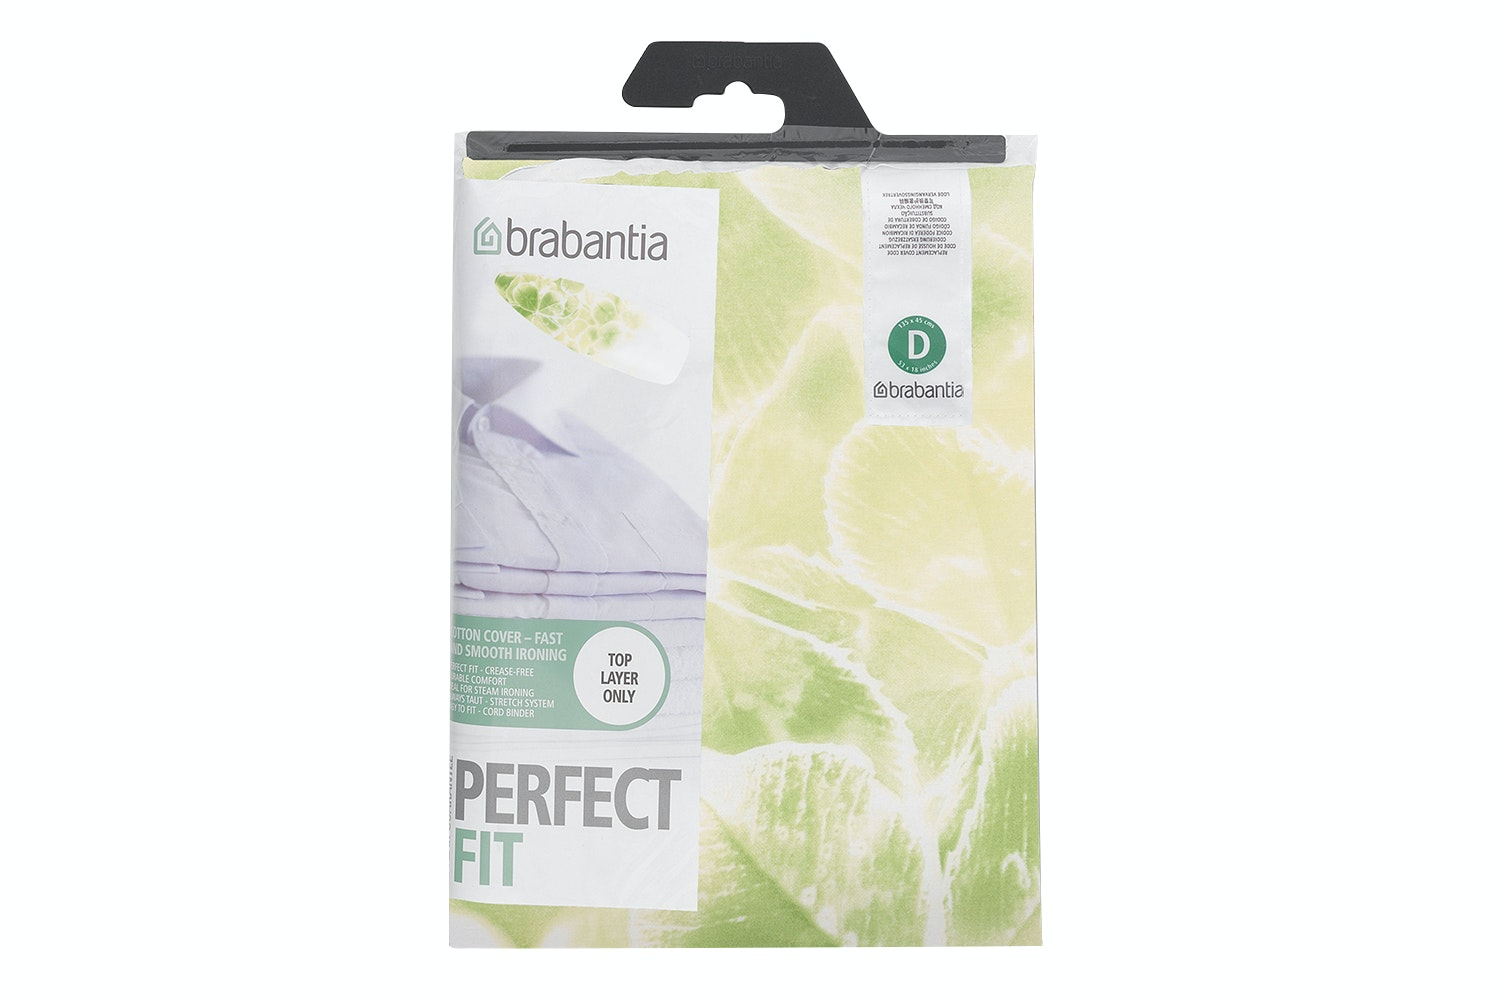 Brabantia 135x45cm D Ironing Board Cover | Assorted